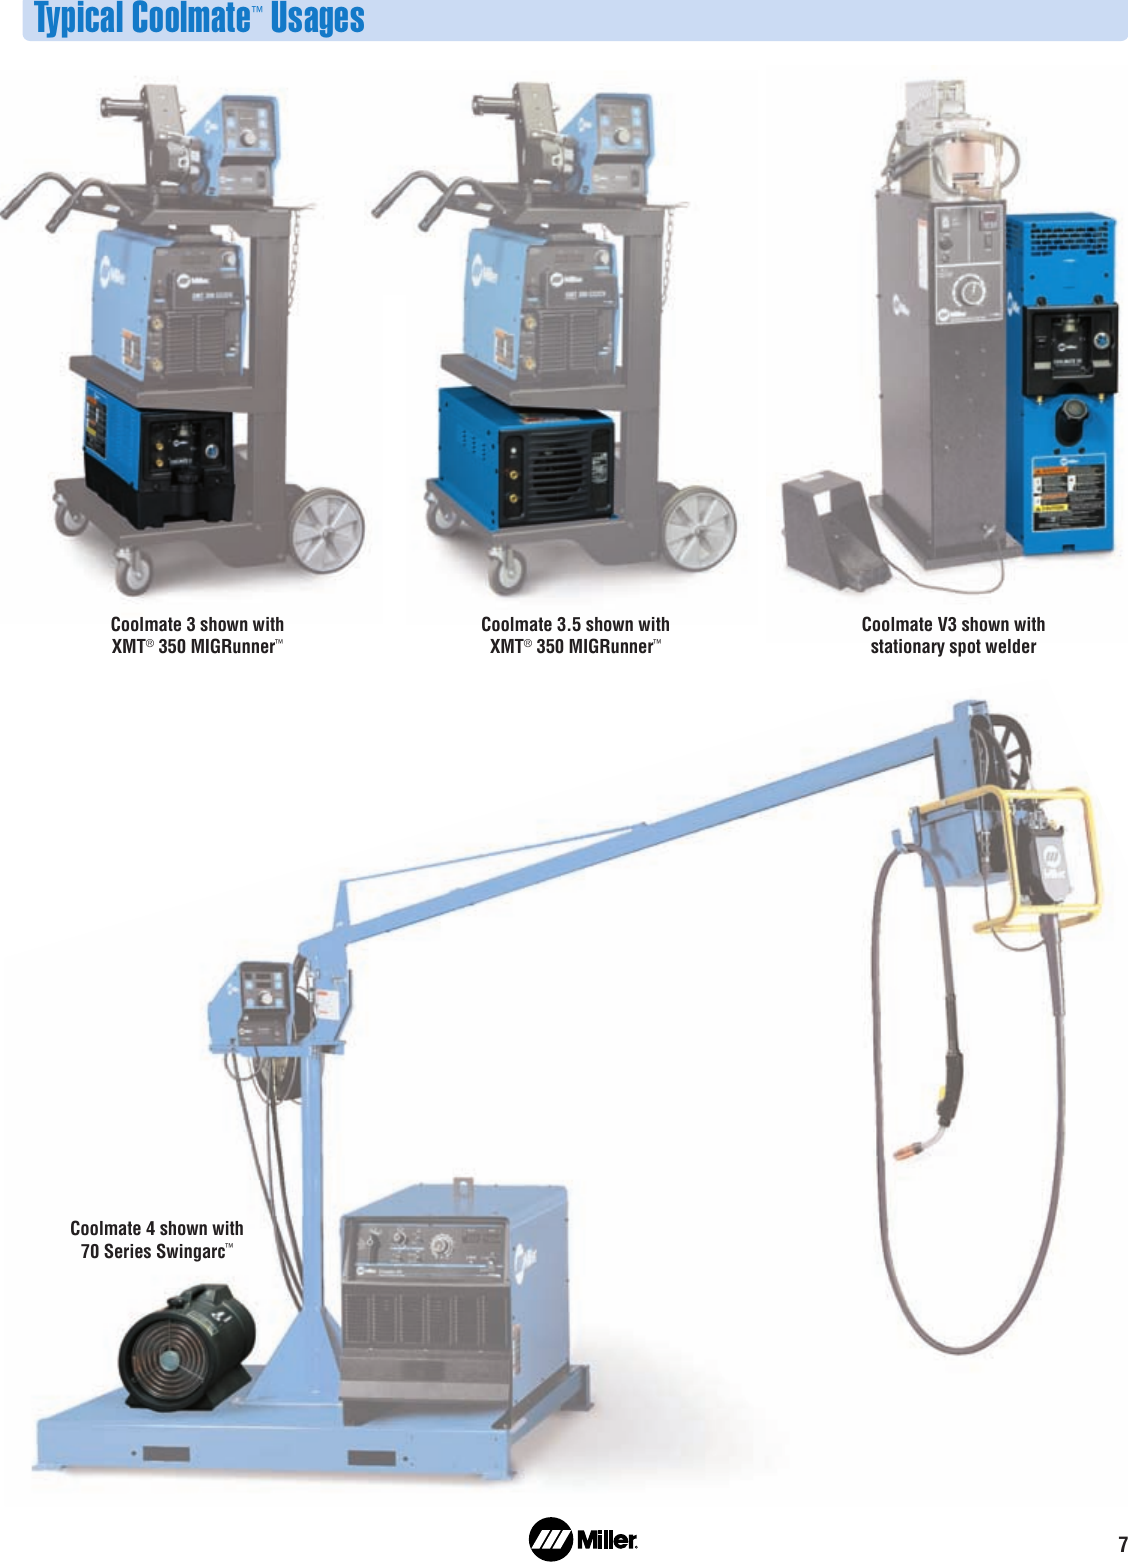 Miller Electric Coolmate 1 Users Manual A AY7 2 Coolant Systems